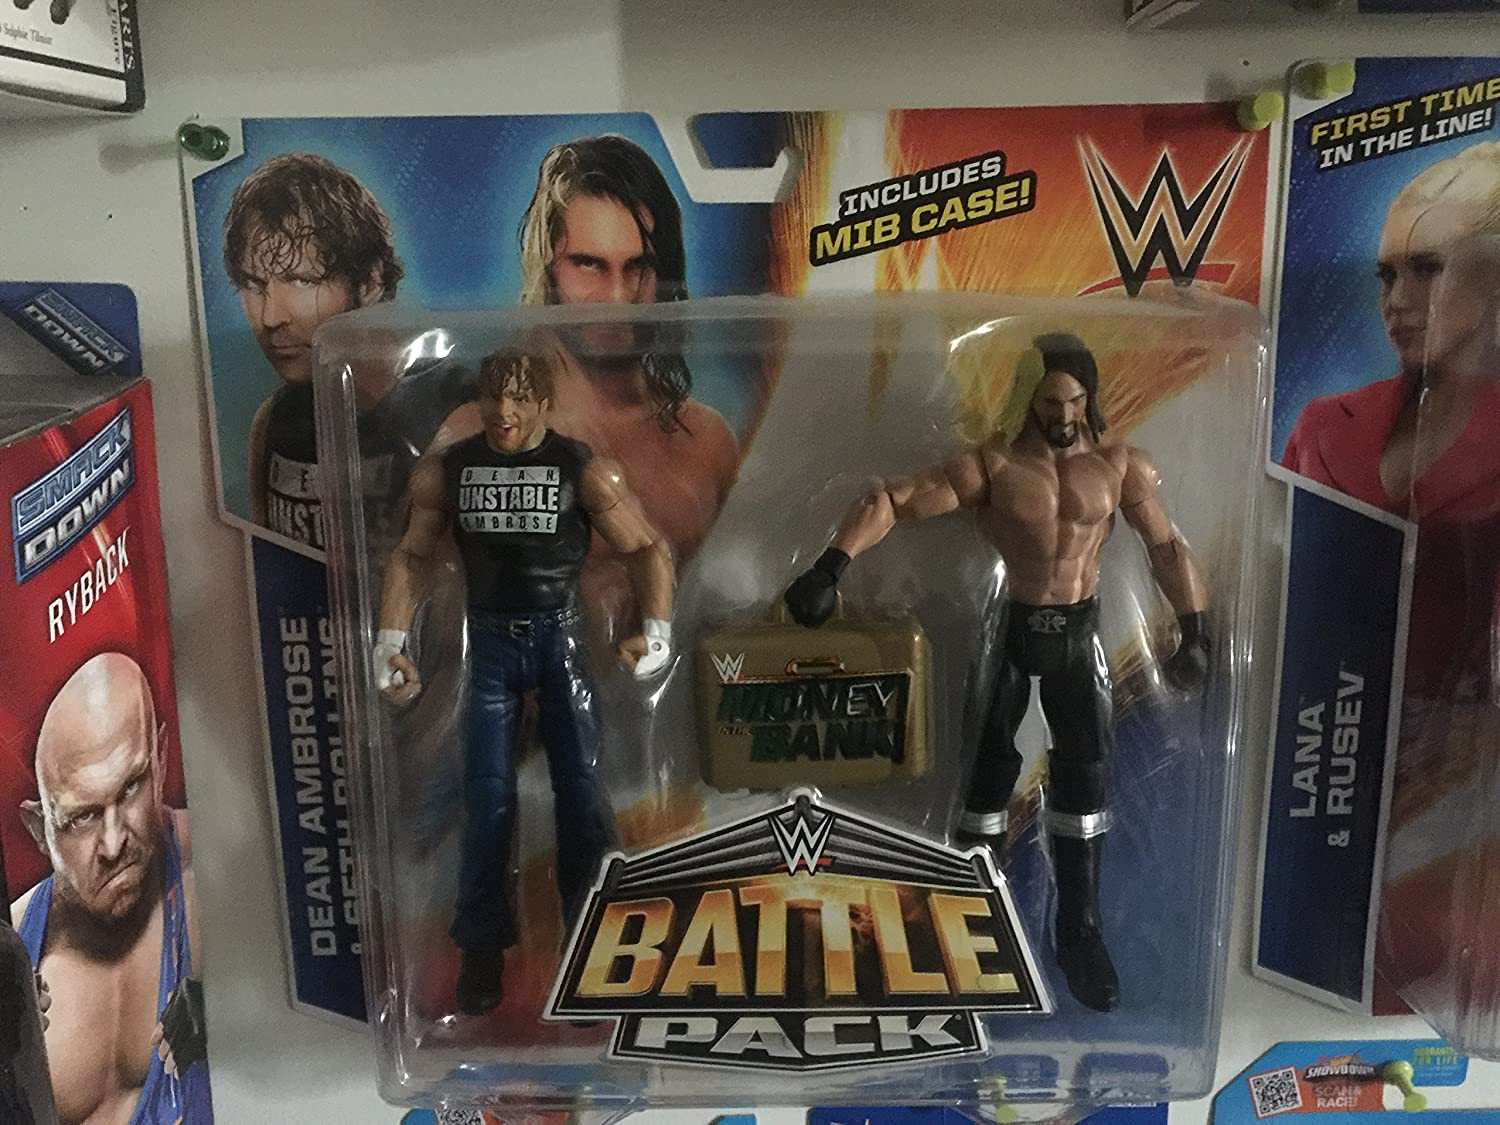 DEAN AMBROSE & SETH ROLLINS - WWE BATTLE PACKS 36 WWE TOY WRESTLING ACTION FIGURE 2-PACKS by Prannoi: Amazon.es: Juguetes y juegos